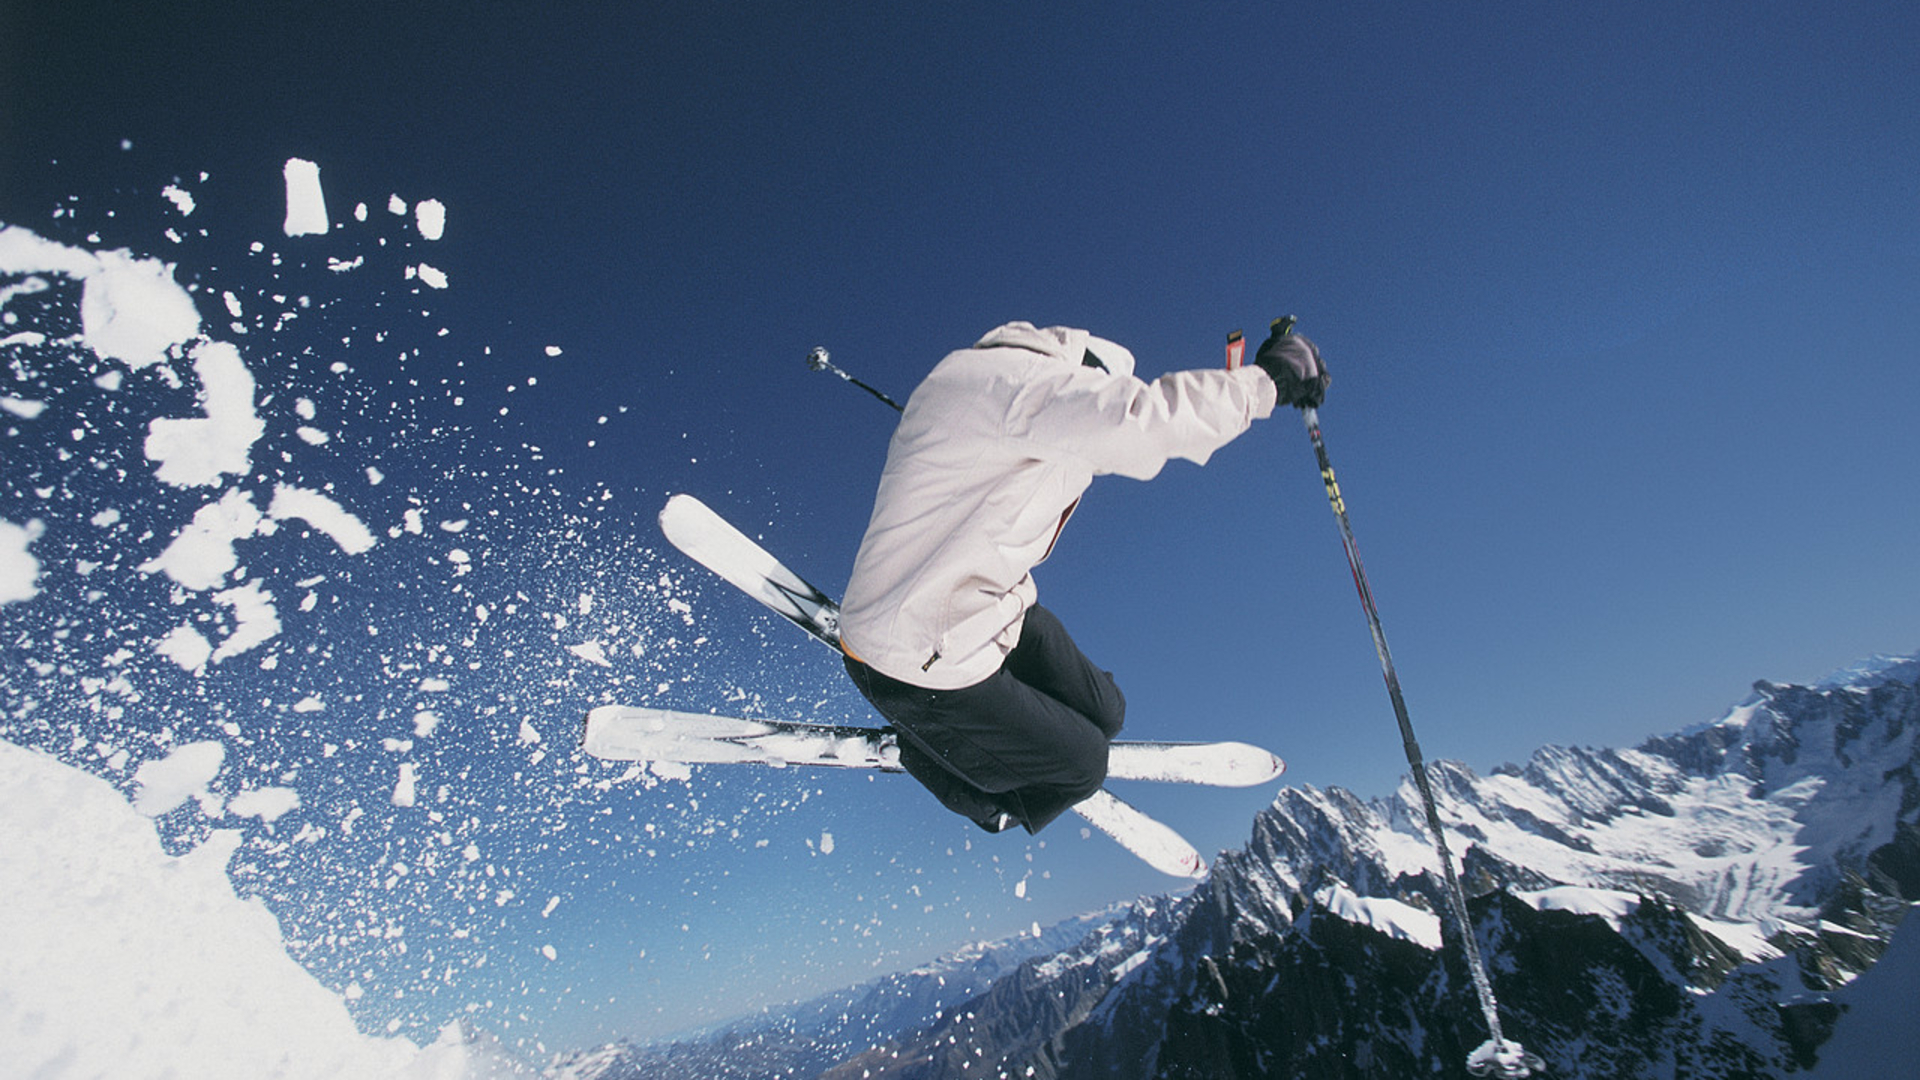 Skiing Wallpaper Skiing Hd Wallpaper Background Image 1920x1080 Id 313833